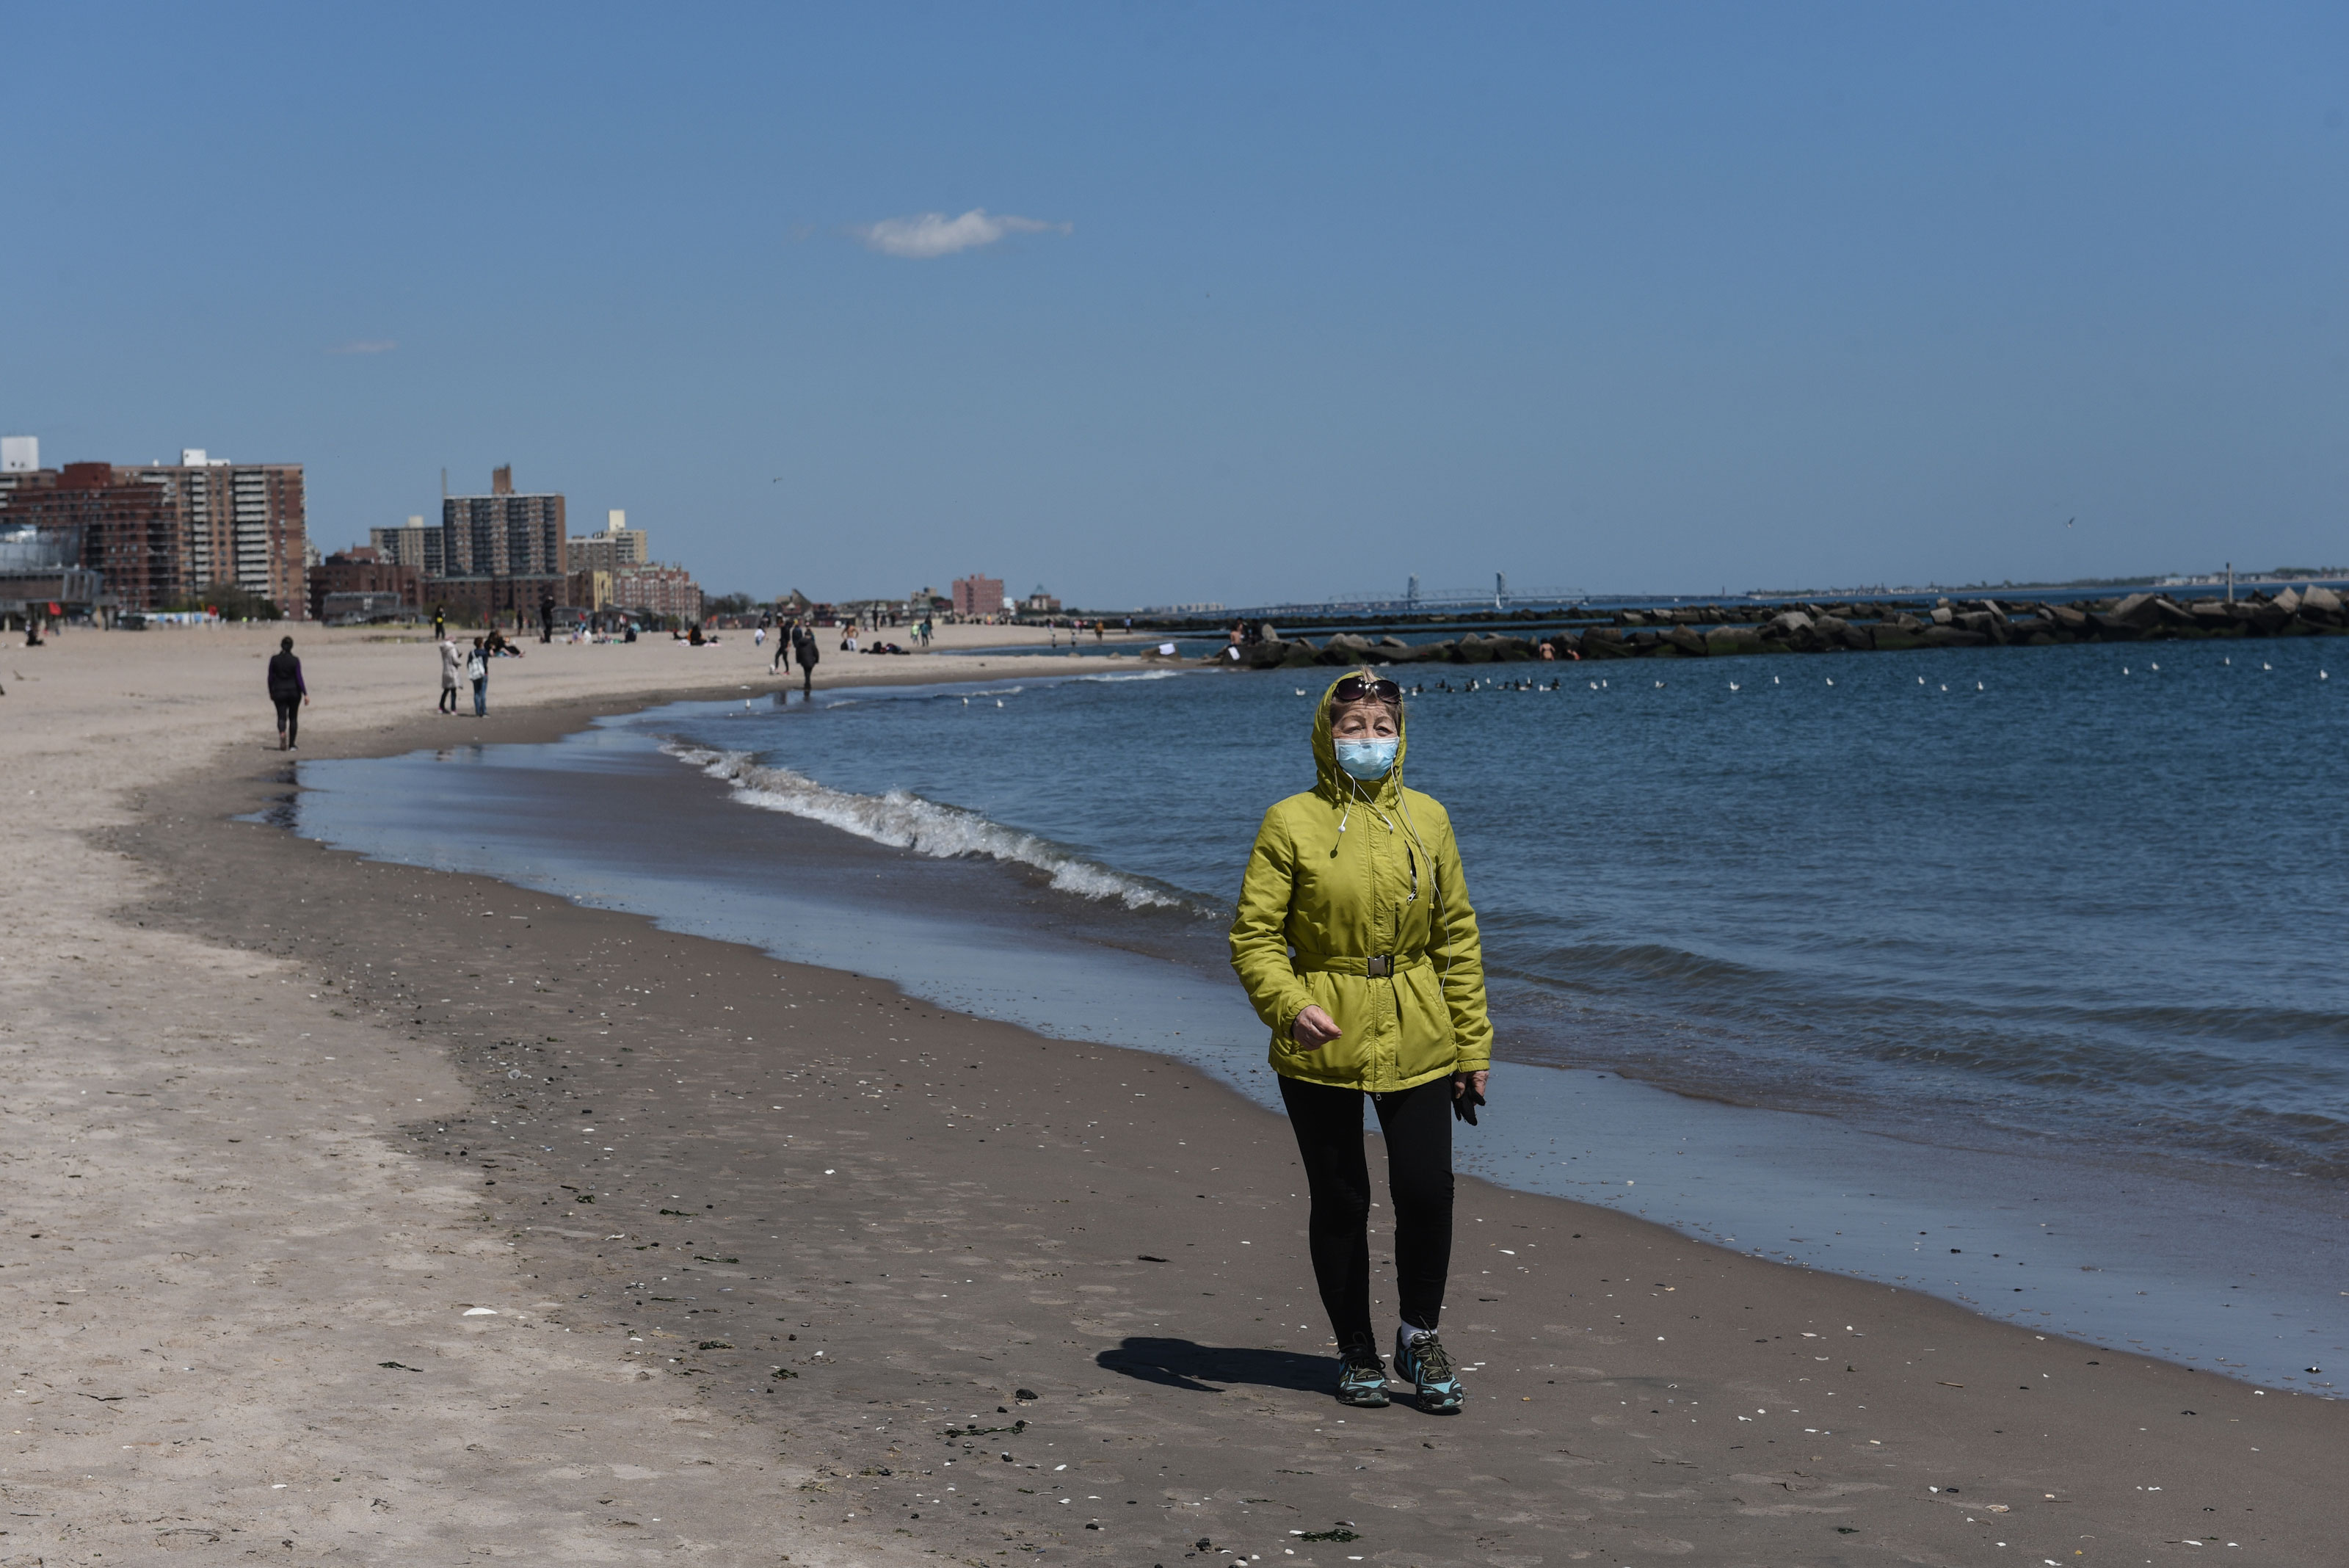 A person walks on the beach on May 13 in the Coney Island neighborhood in the Brooklyn borough in New York City.